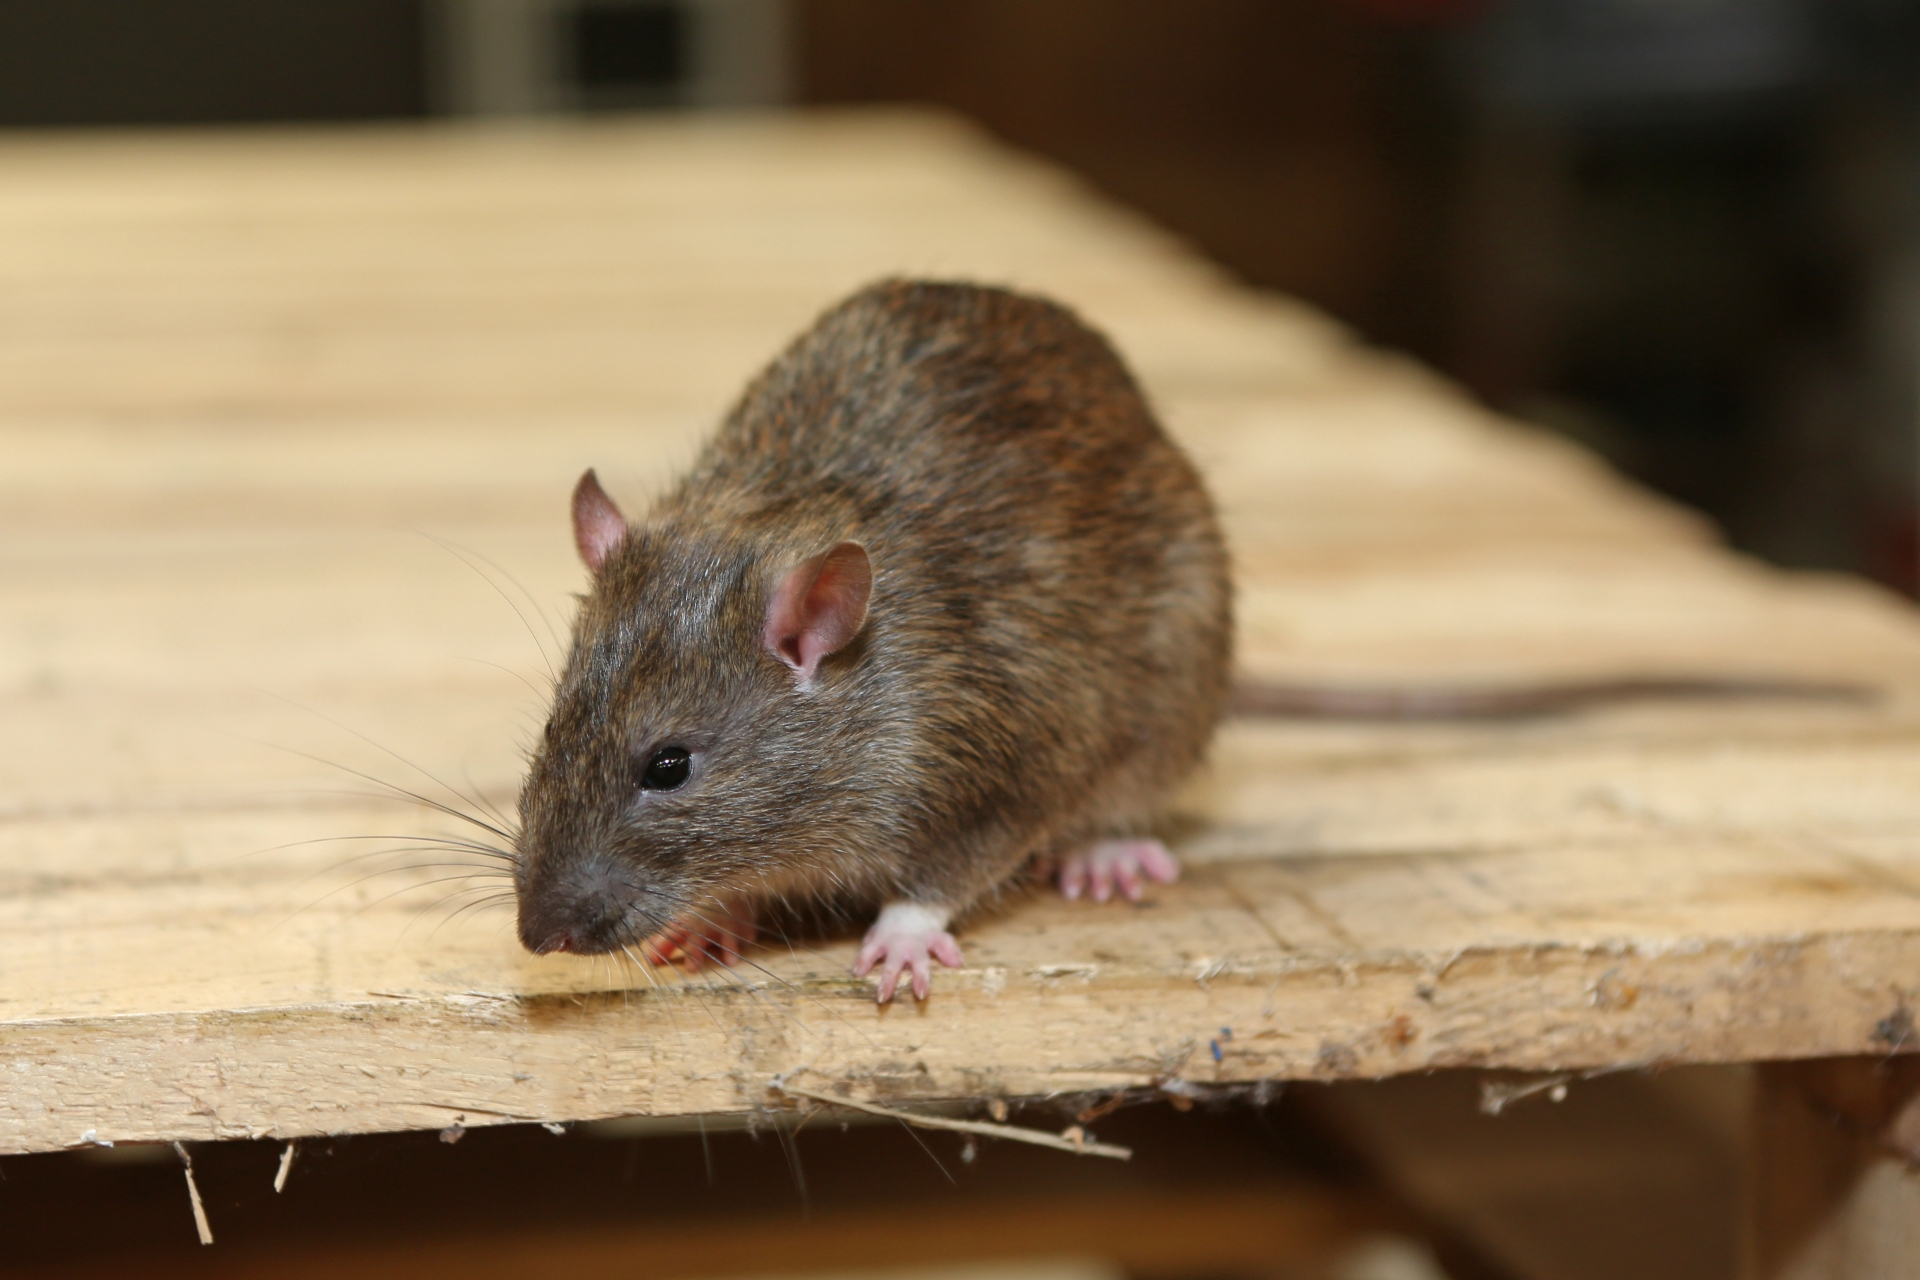 Rat extermination, Pest Control in Earl's Court, SW5. Call Now 020 8166 9746